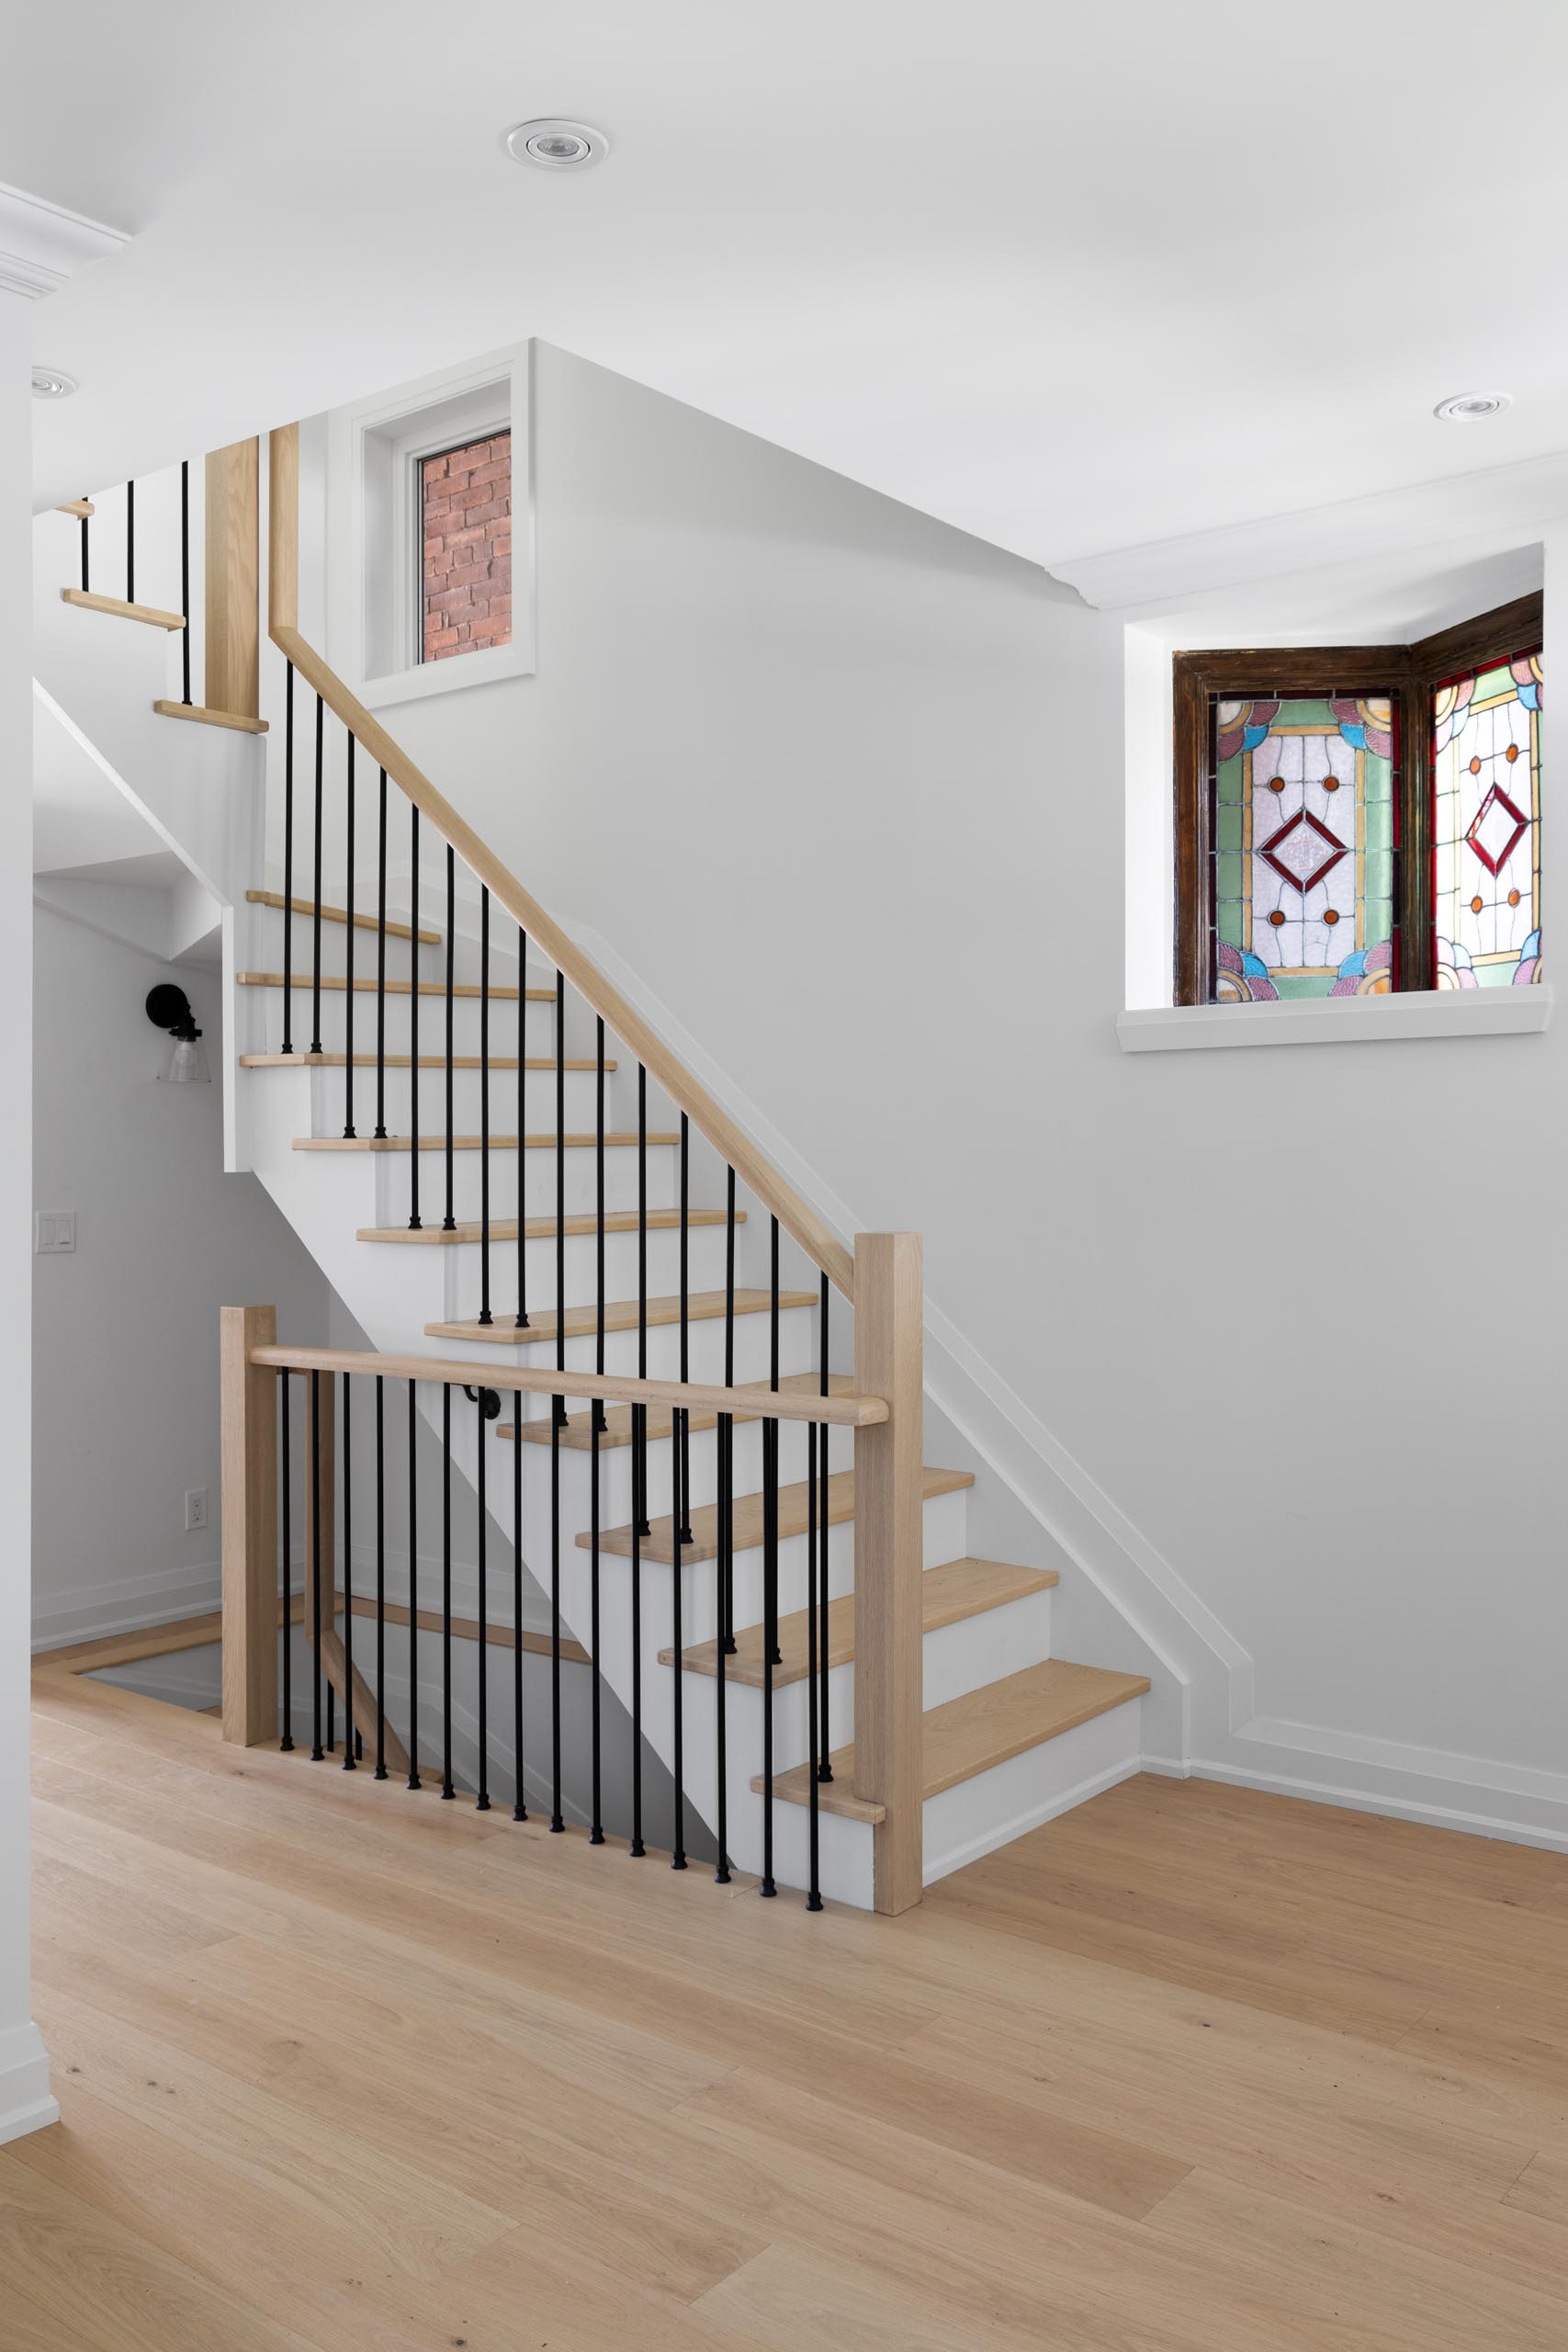 This contemporary staircase provides views of original stained glass windows, that were kept as a nod to the former design of the house.